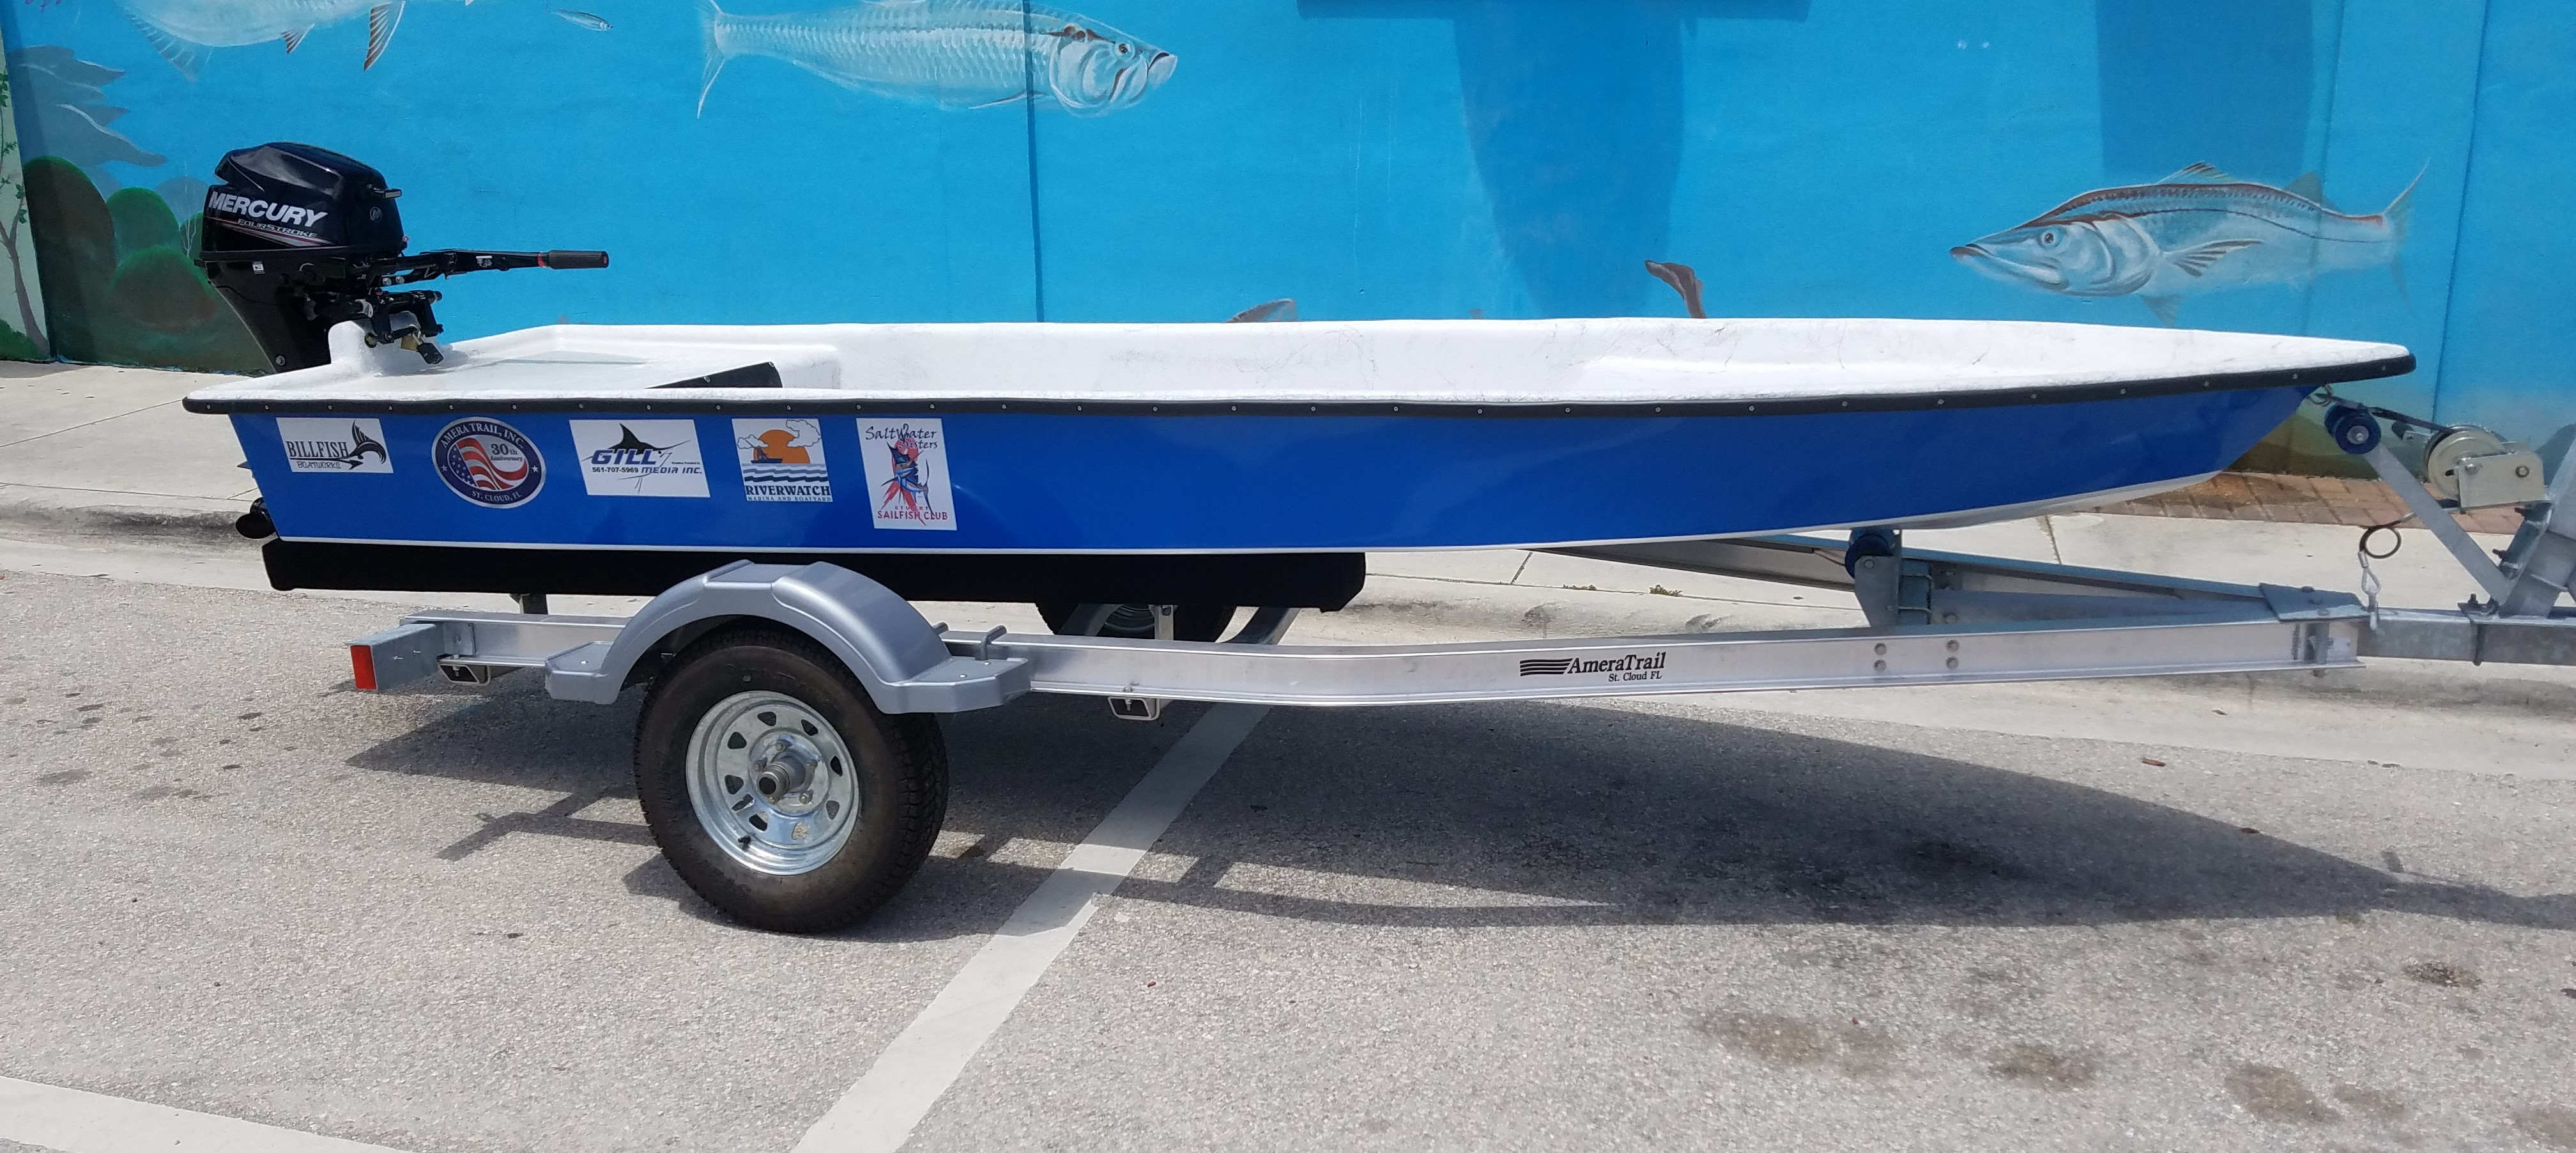 Win a Boat/Motor/Trailer from Saltwater Sisters! | Raffle Creator